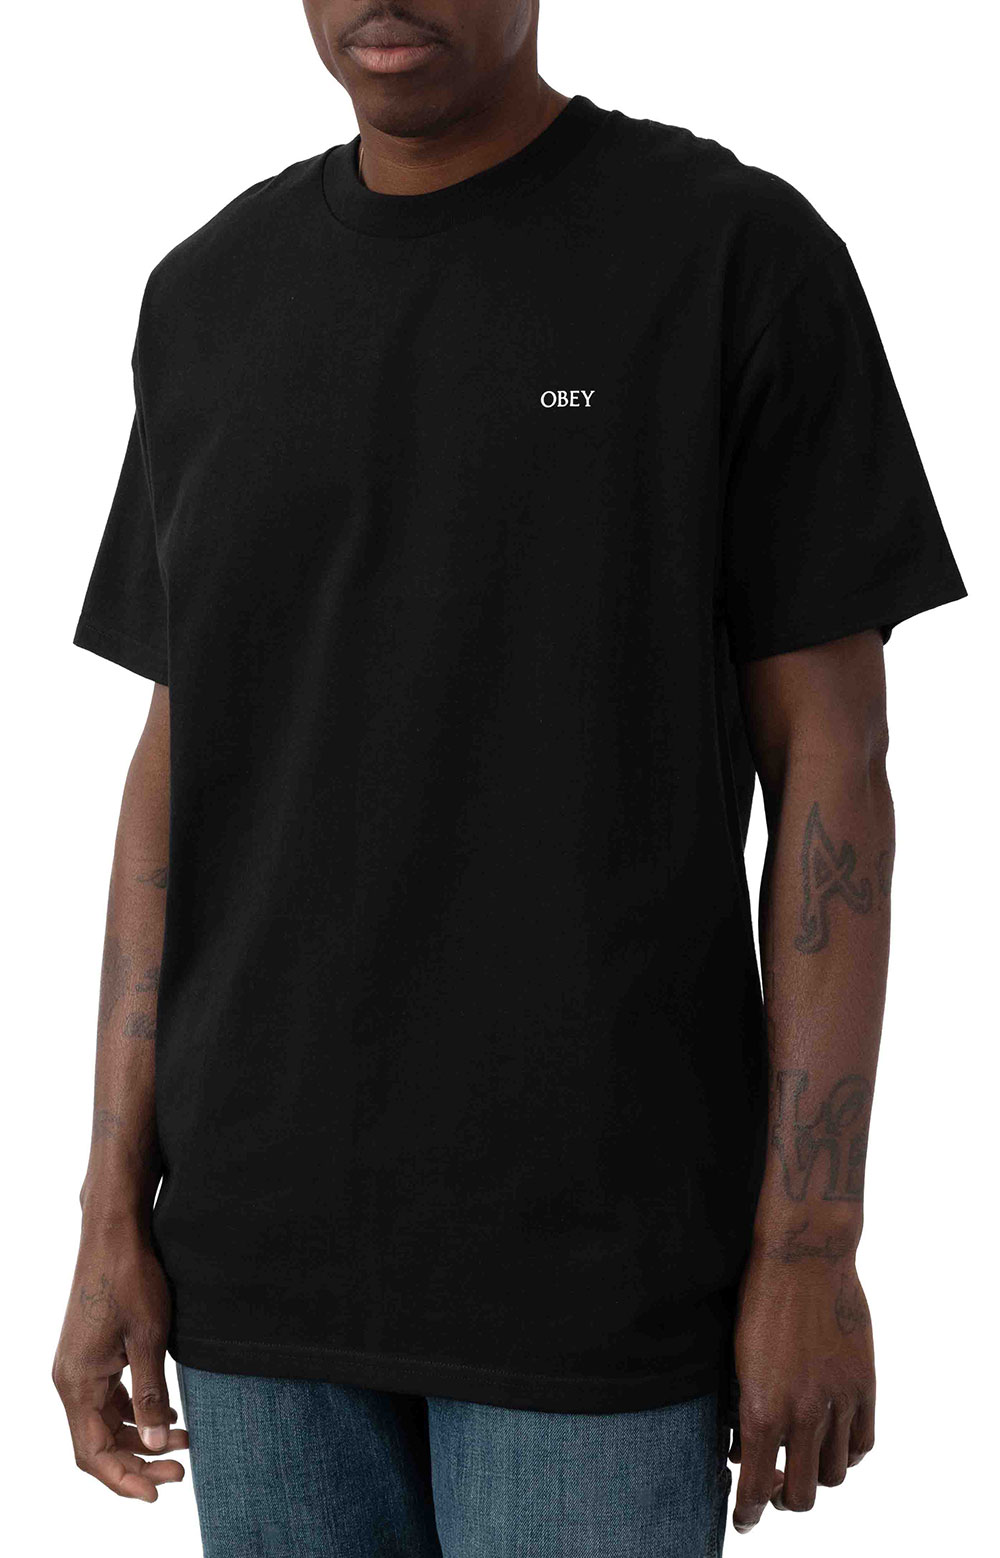 Obey Paint It Black T-Shirt - Black 2